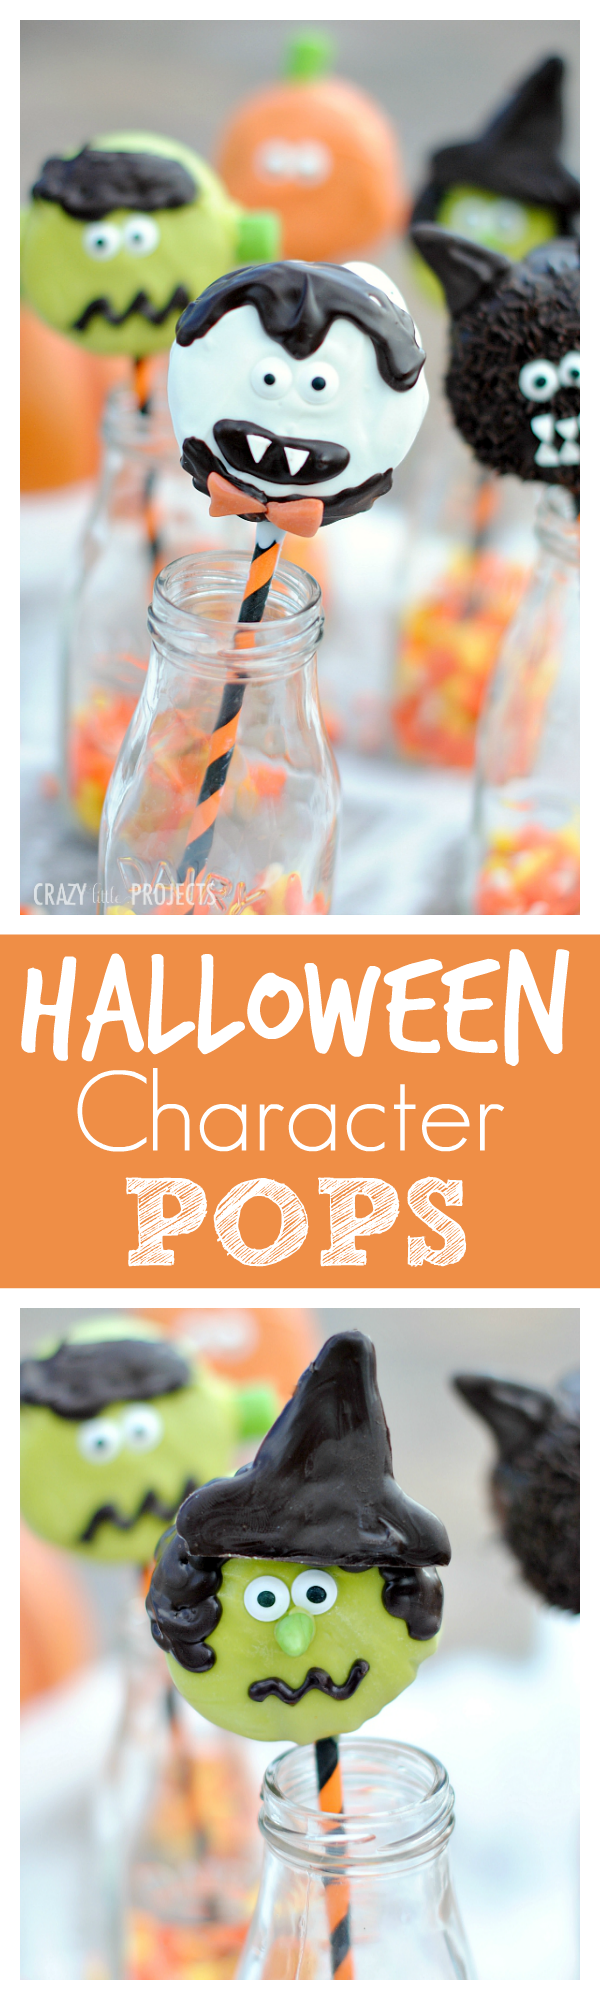 Cute Halloween Pops to make with your kids. Ding Dongs and Twinkies inside!